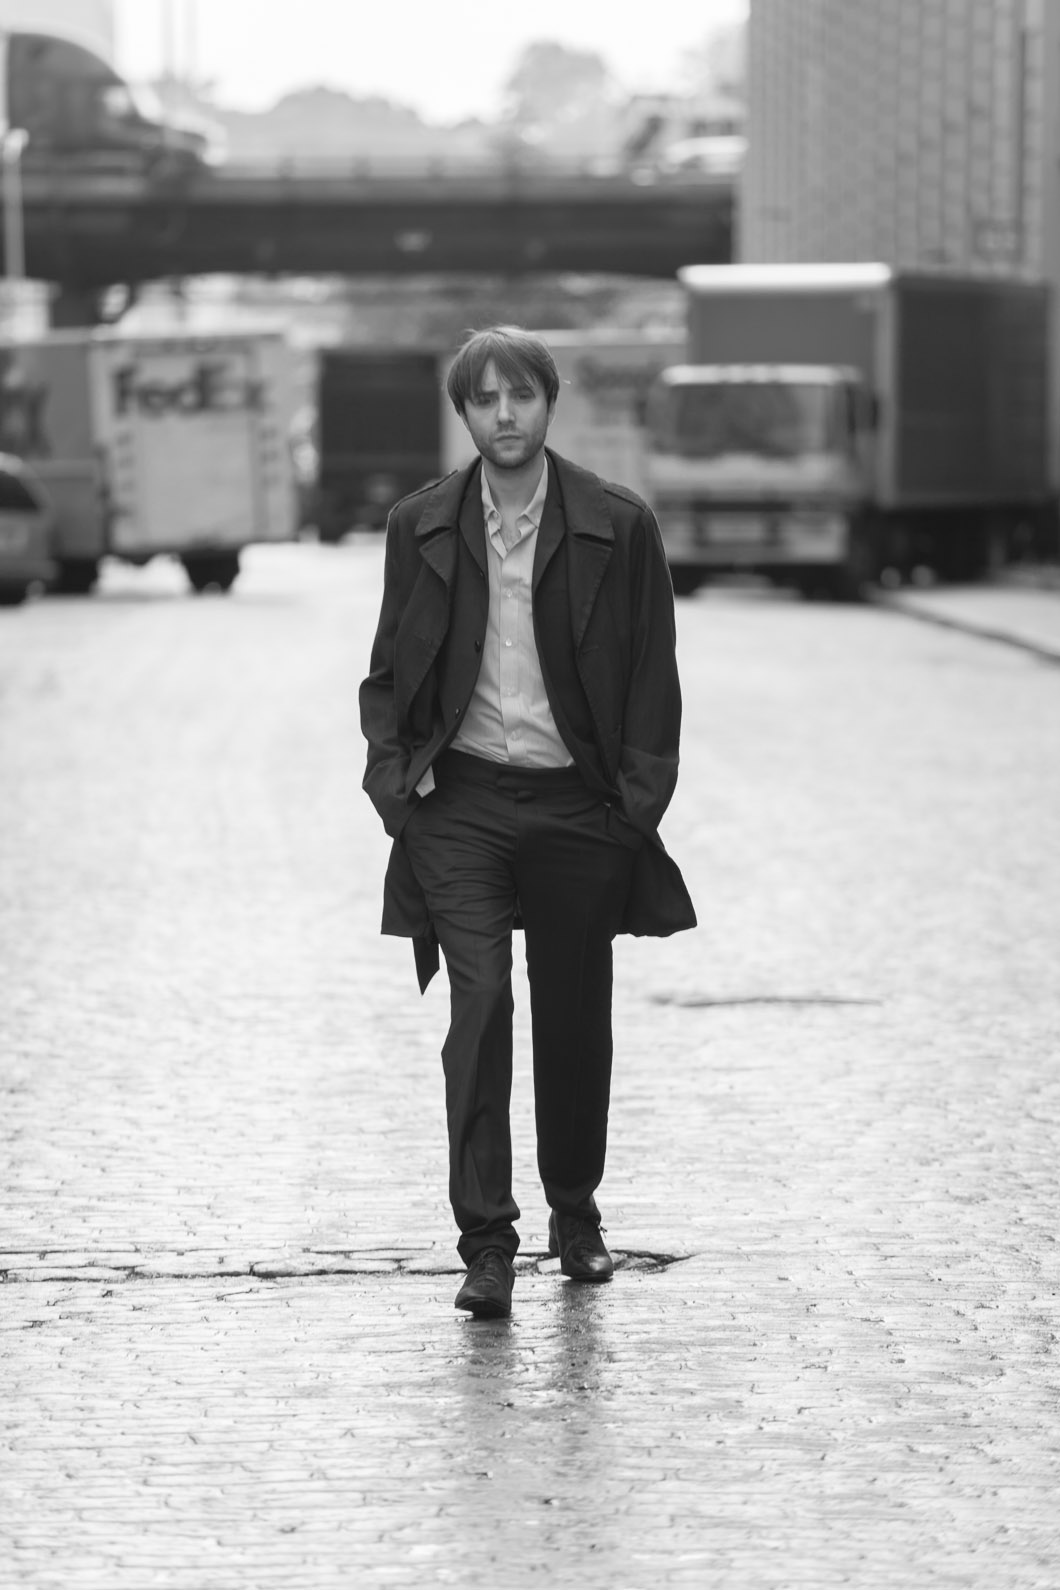 Vincent Kartheiser / Actor / Shot for Gravure